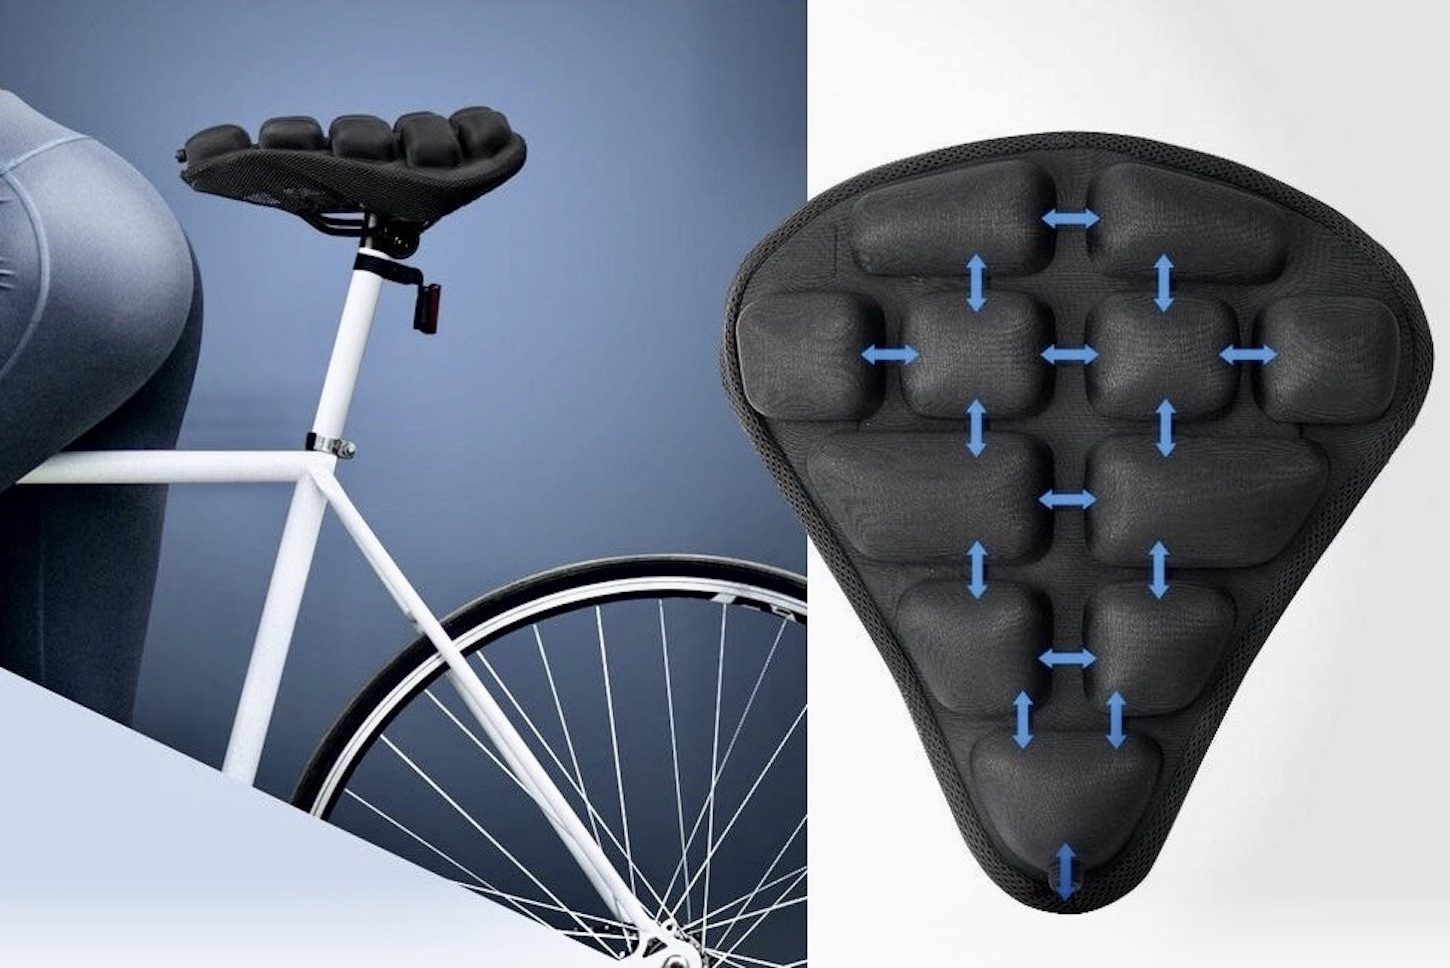 Bike Seat Comfort Stationary Bike Se Most Comfortable Bicycle Seat for Women